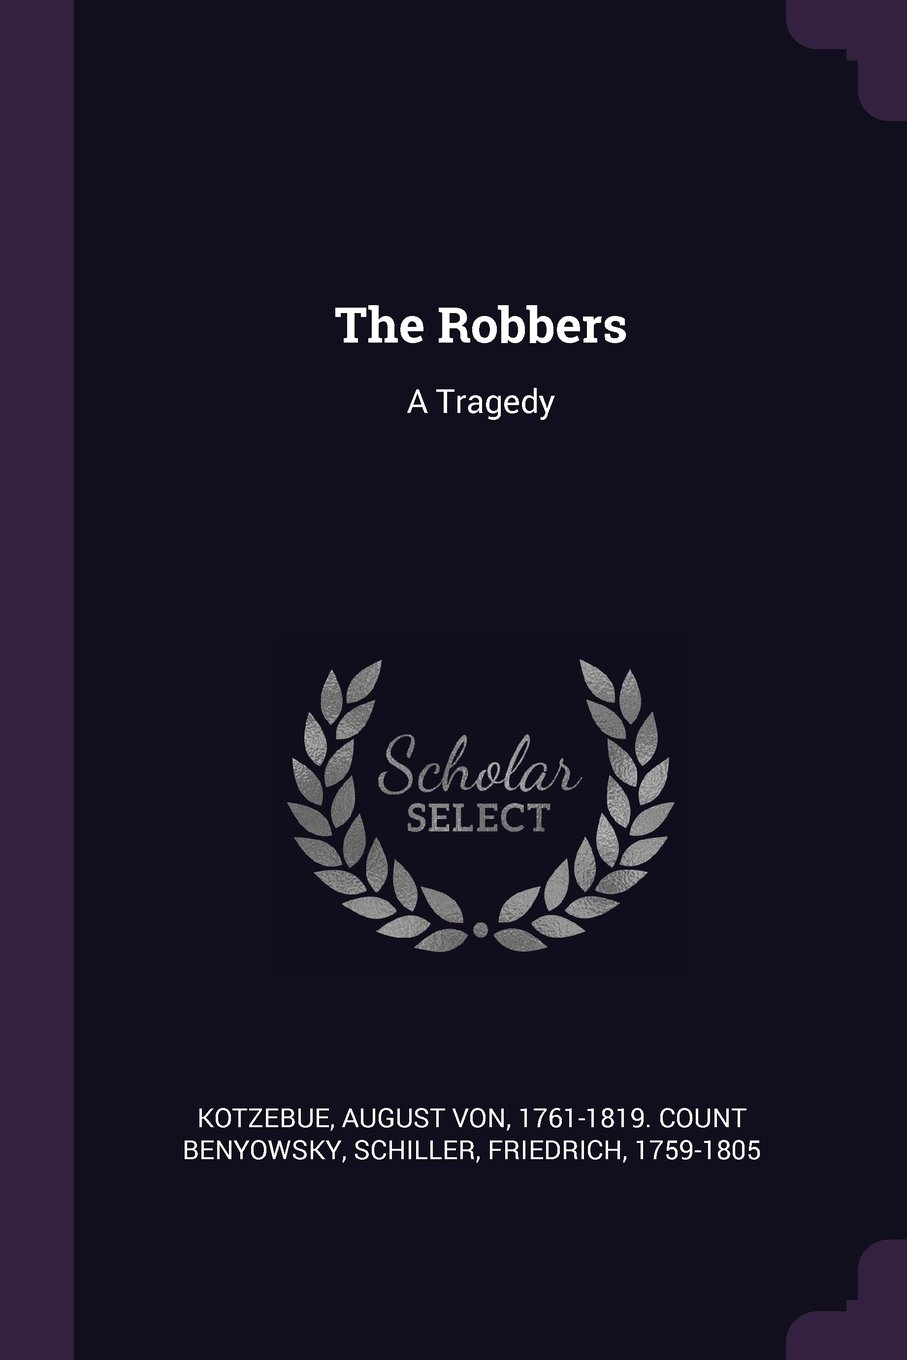 Friedrich Schiller, The Robbers: a summary of the work